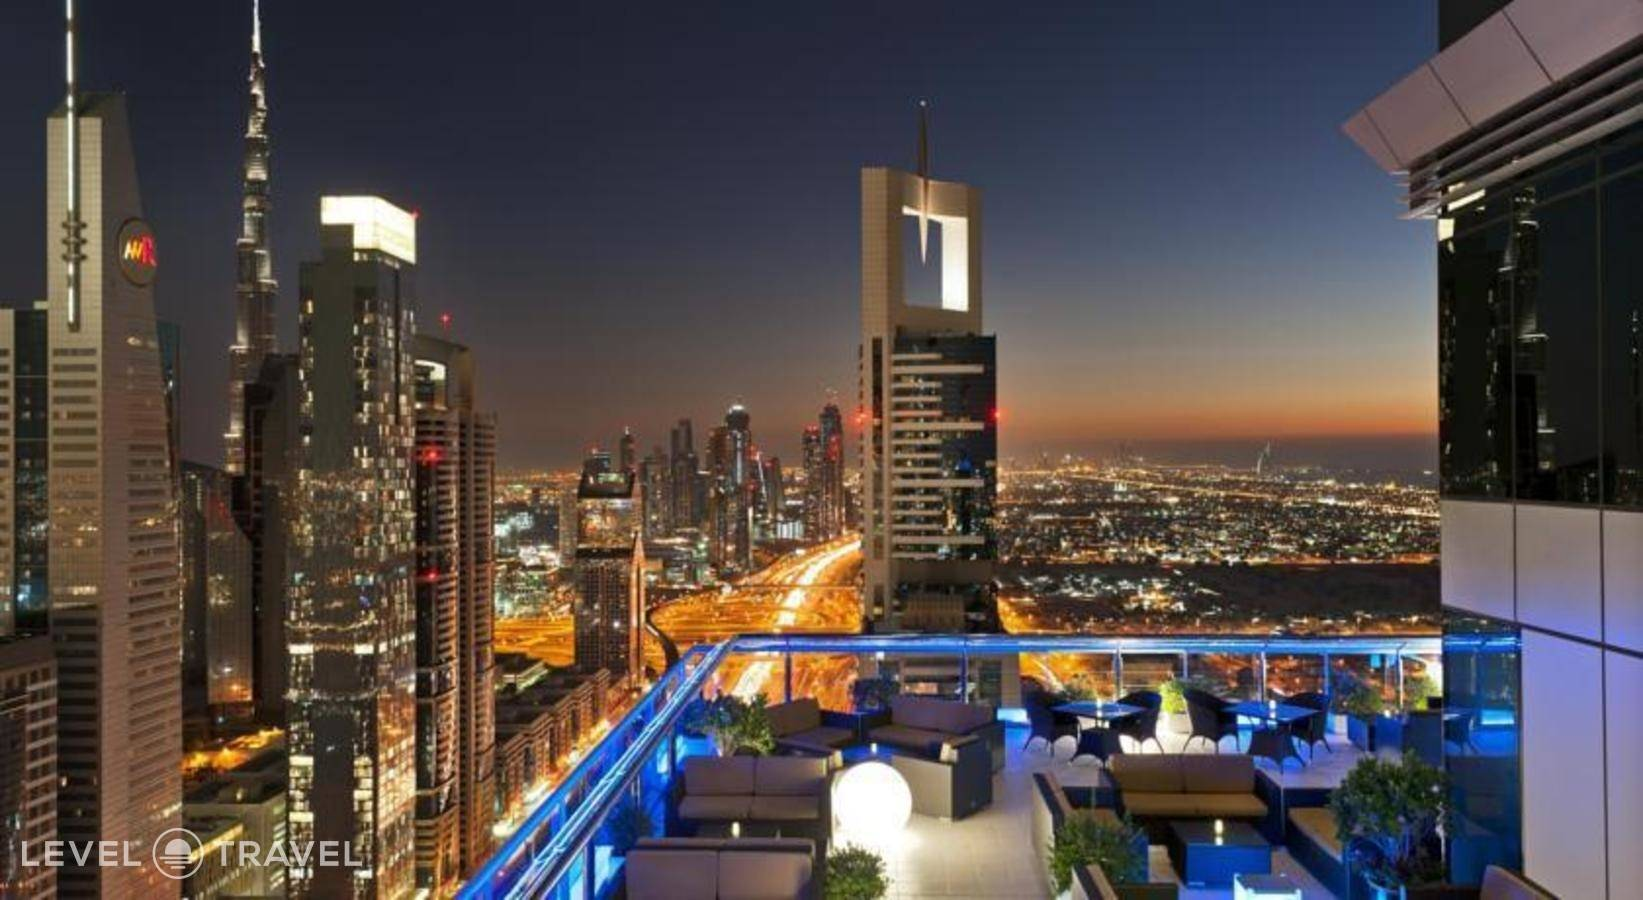 Тур в Sheraton Four Points Sheikh Zayed Road, Дубаи город